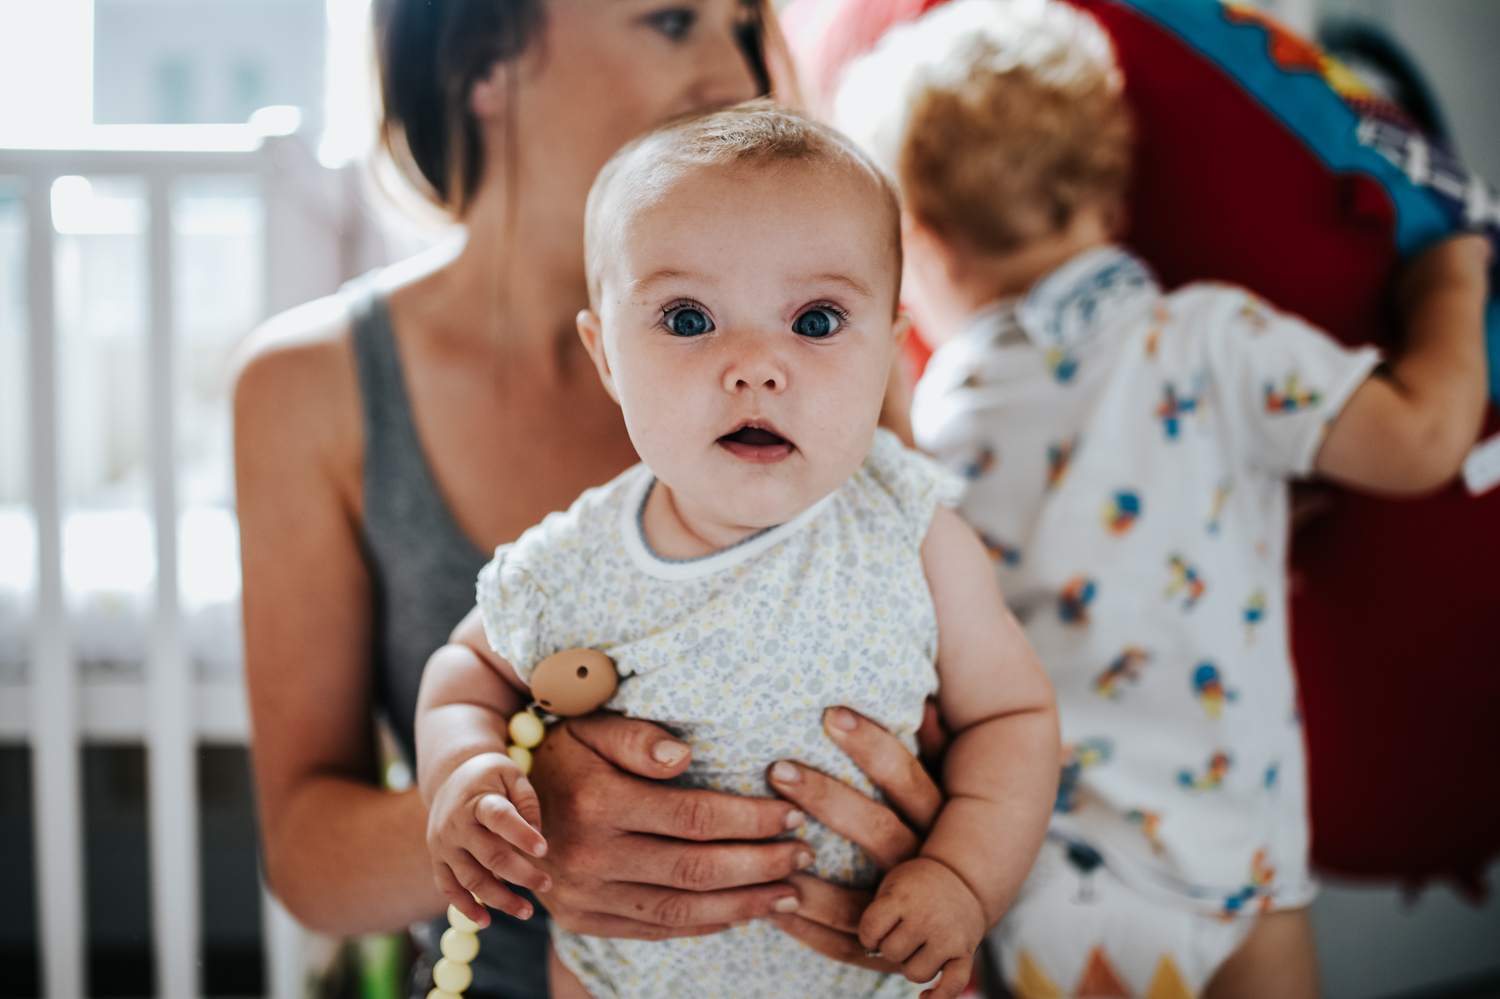 A baby stares directly at the camera as she is being held by her mother as they sit on the floor of their bedroom during this intimate at home photo session in Yeovil, Somerset.